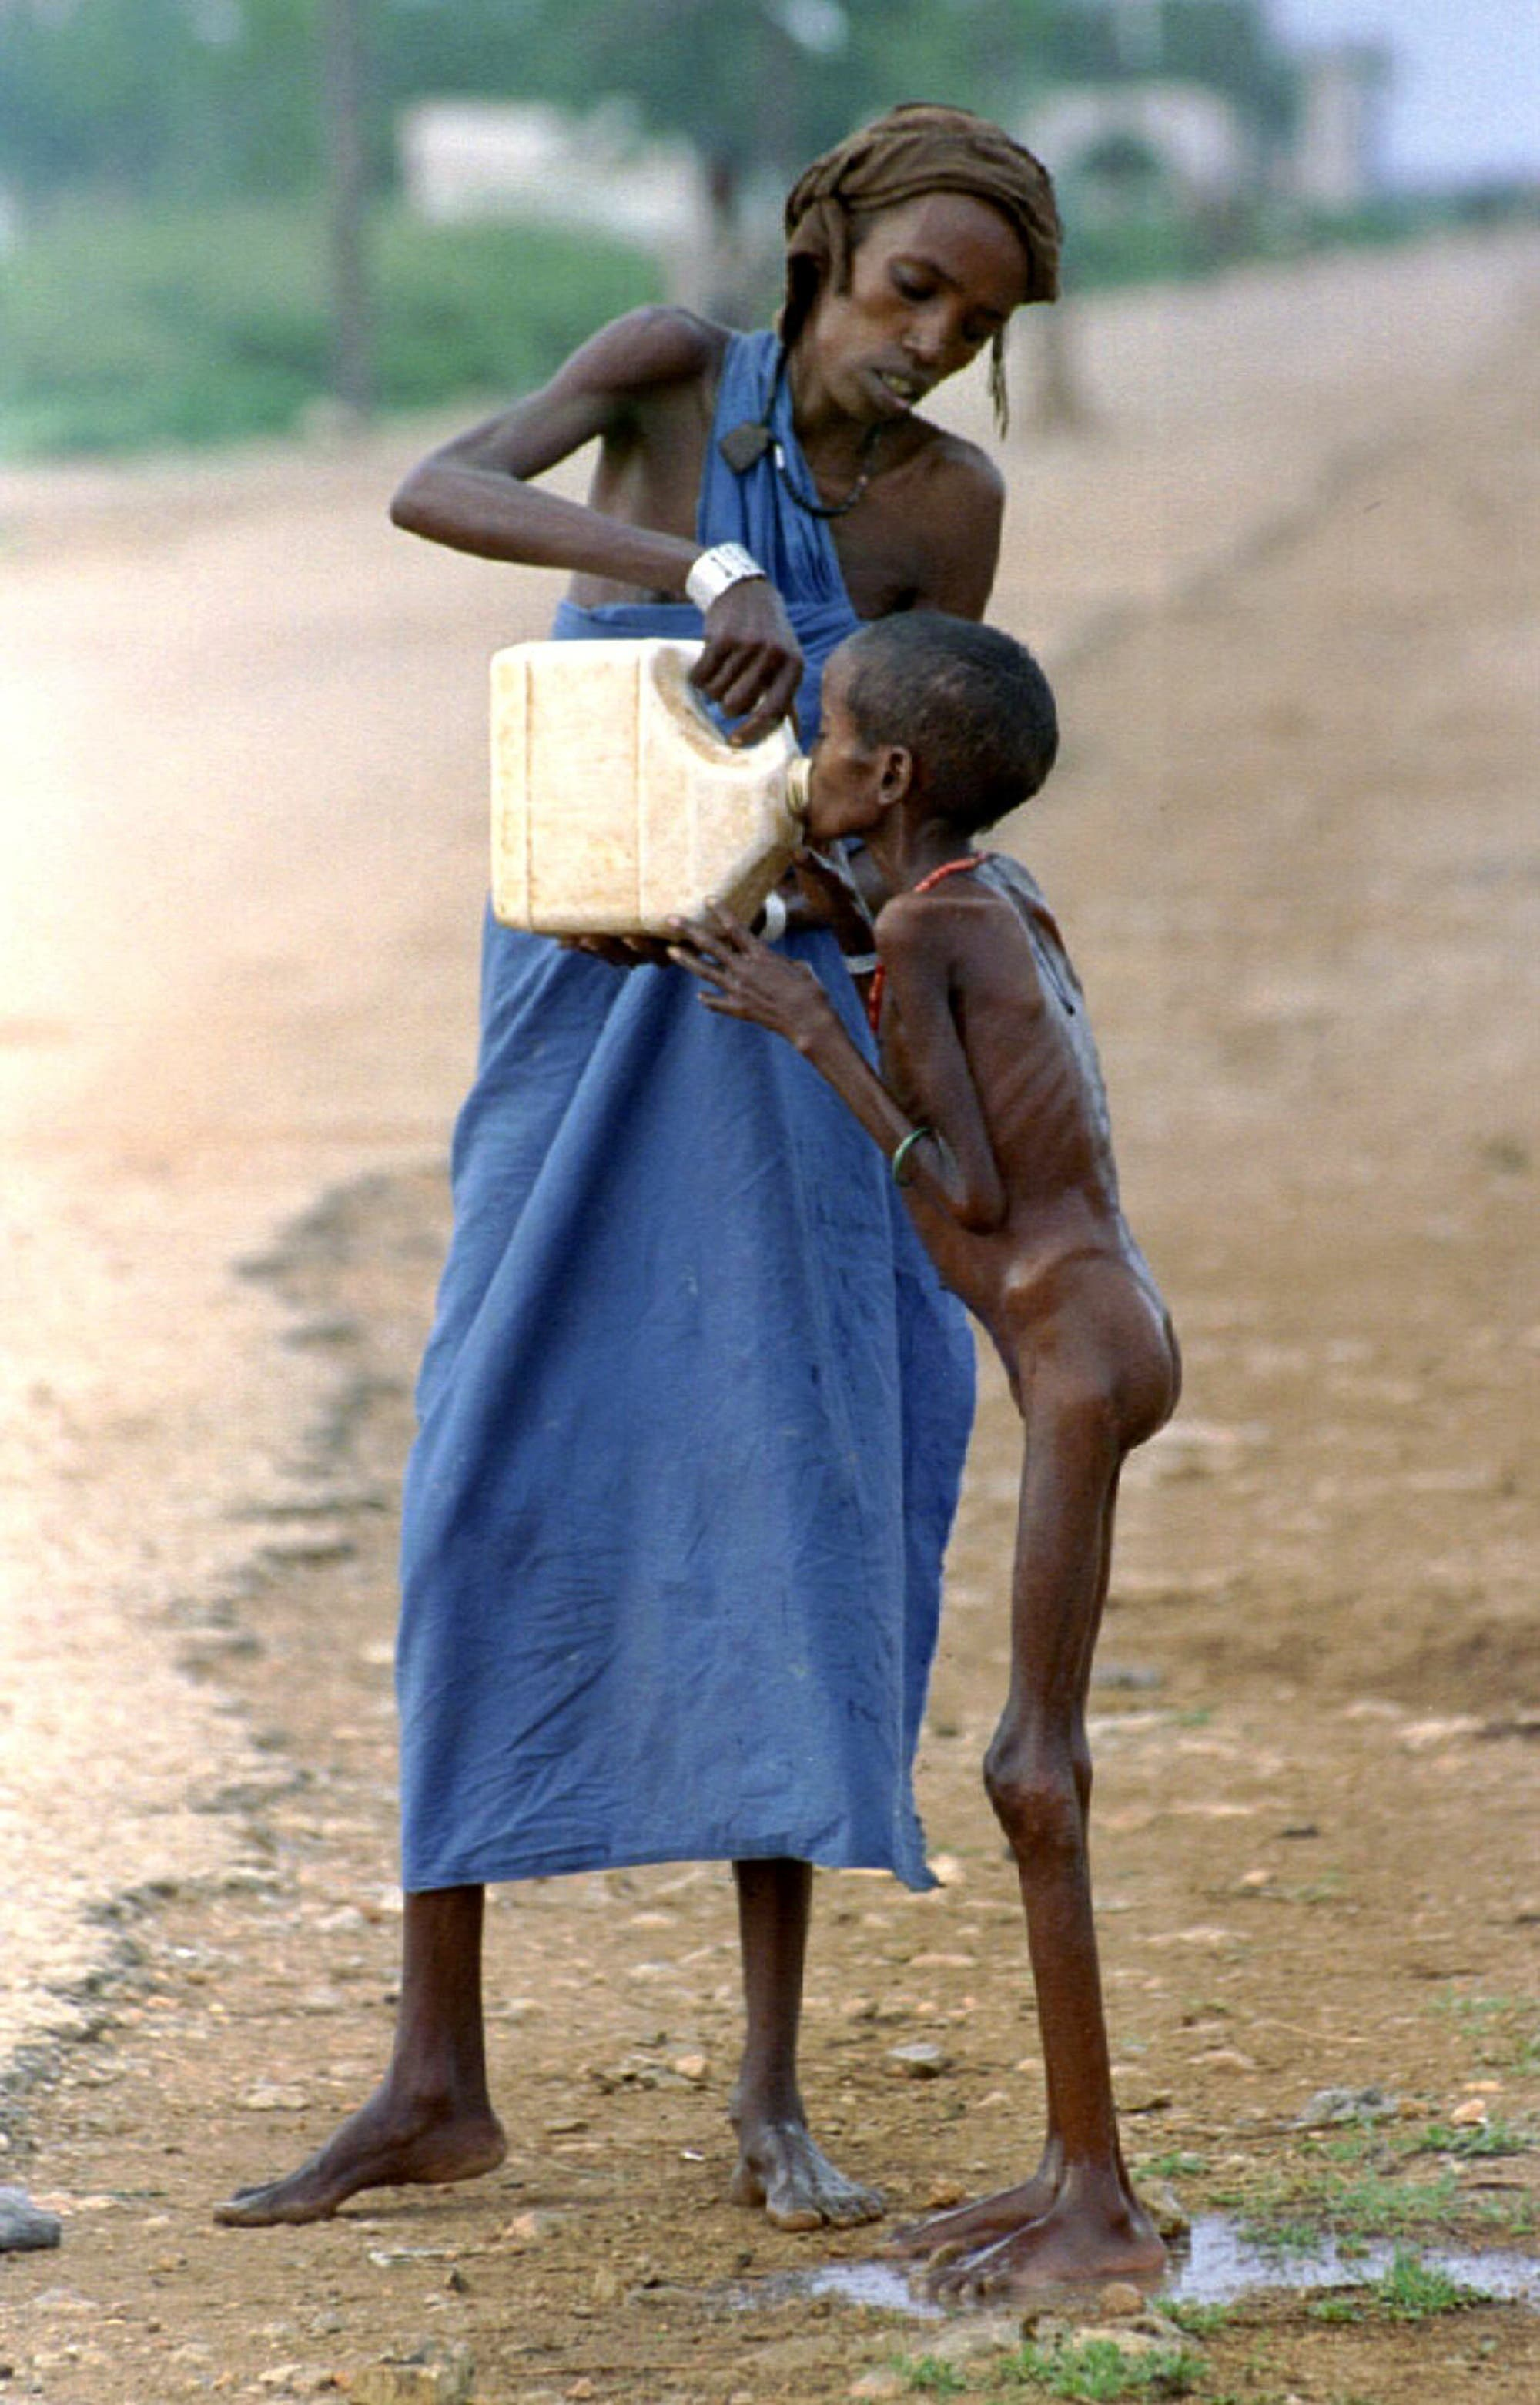 A starving Somali child is given water near a refugee camp in Baidoa, Somalia, on December 14, 1992. (Reuters/ Yannis Behrakis)